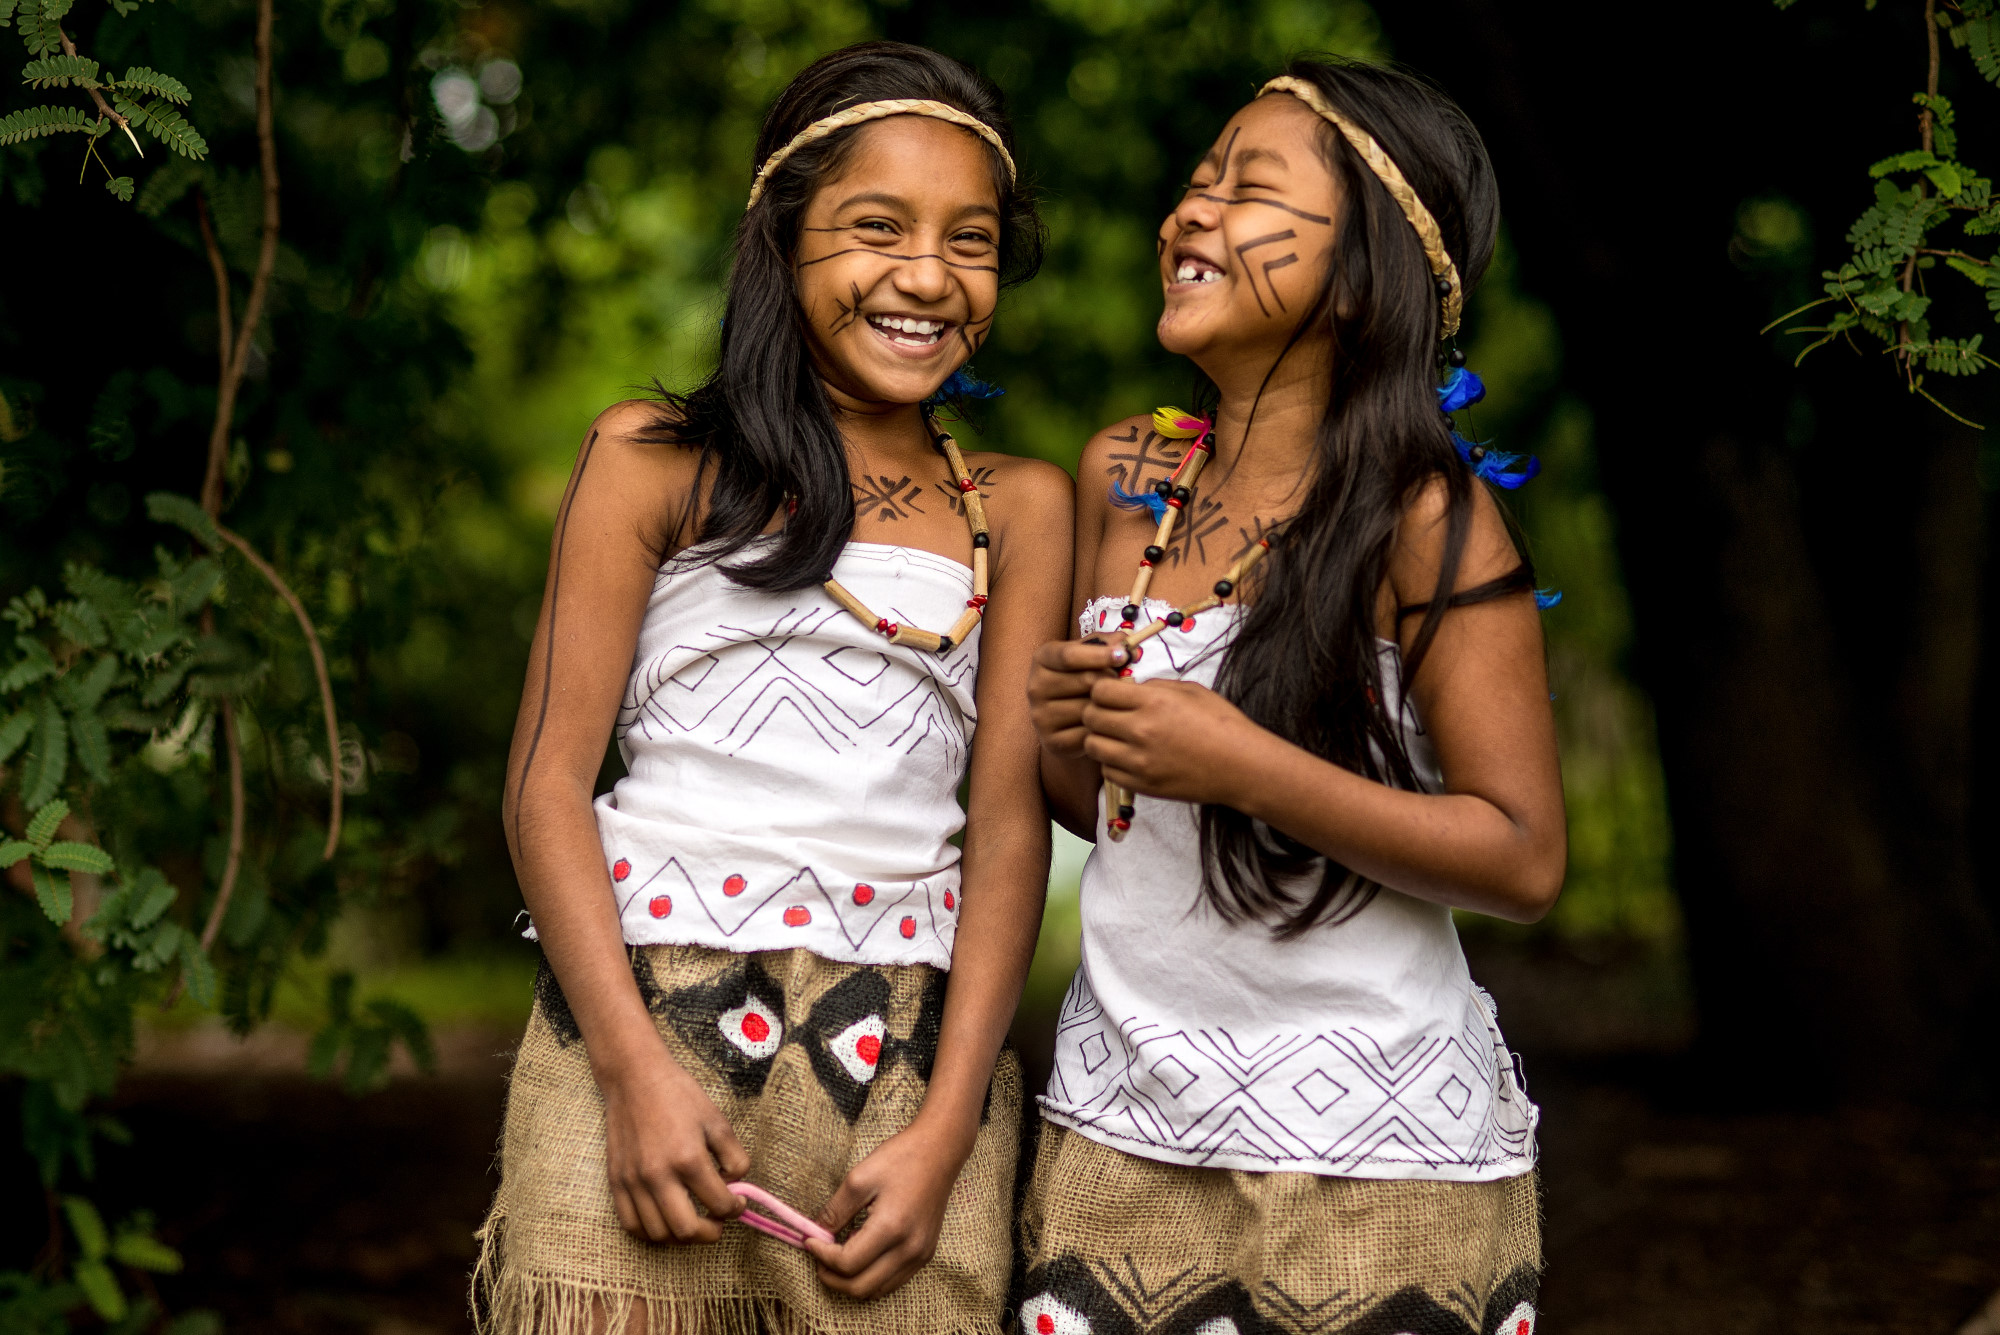 IPEDI BrazilFoundation Kalivono Indigena Indigenous Brasil Educacao Mato Grosso do Sul Terena Education